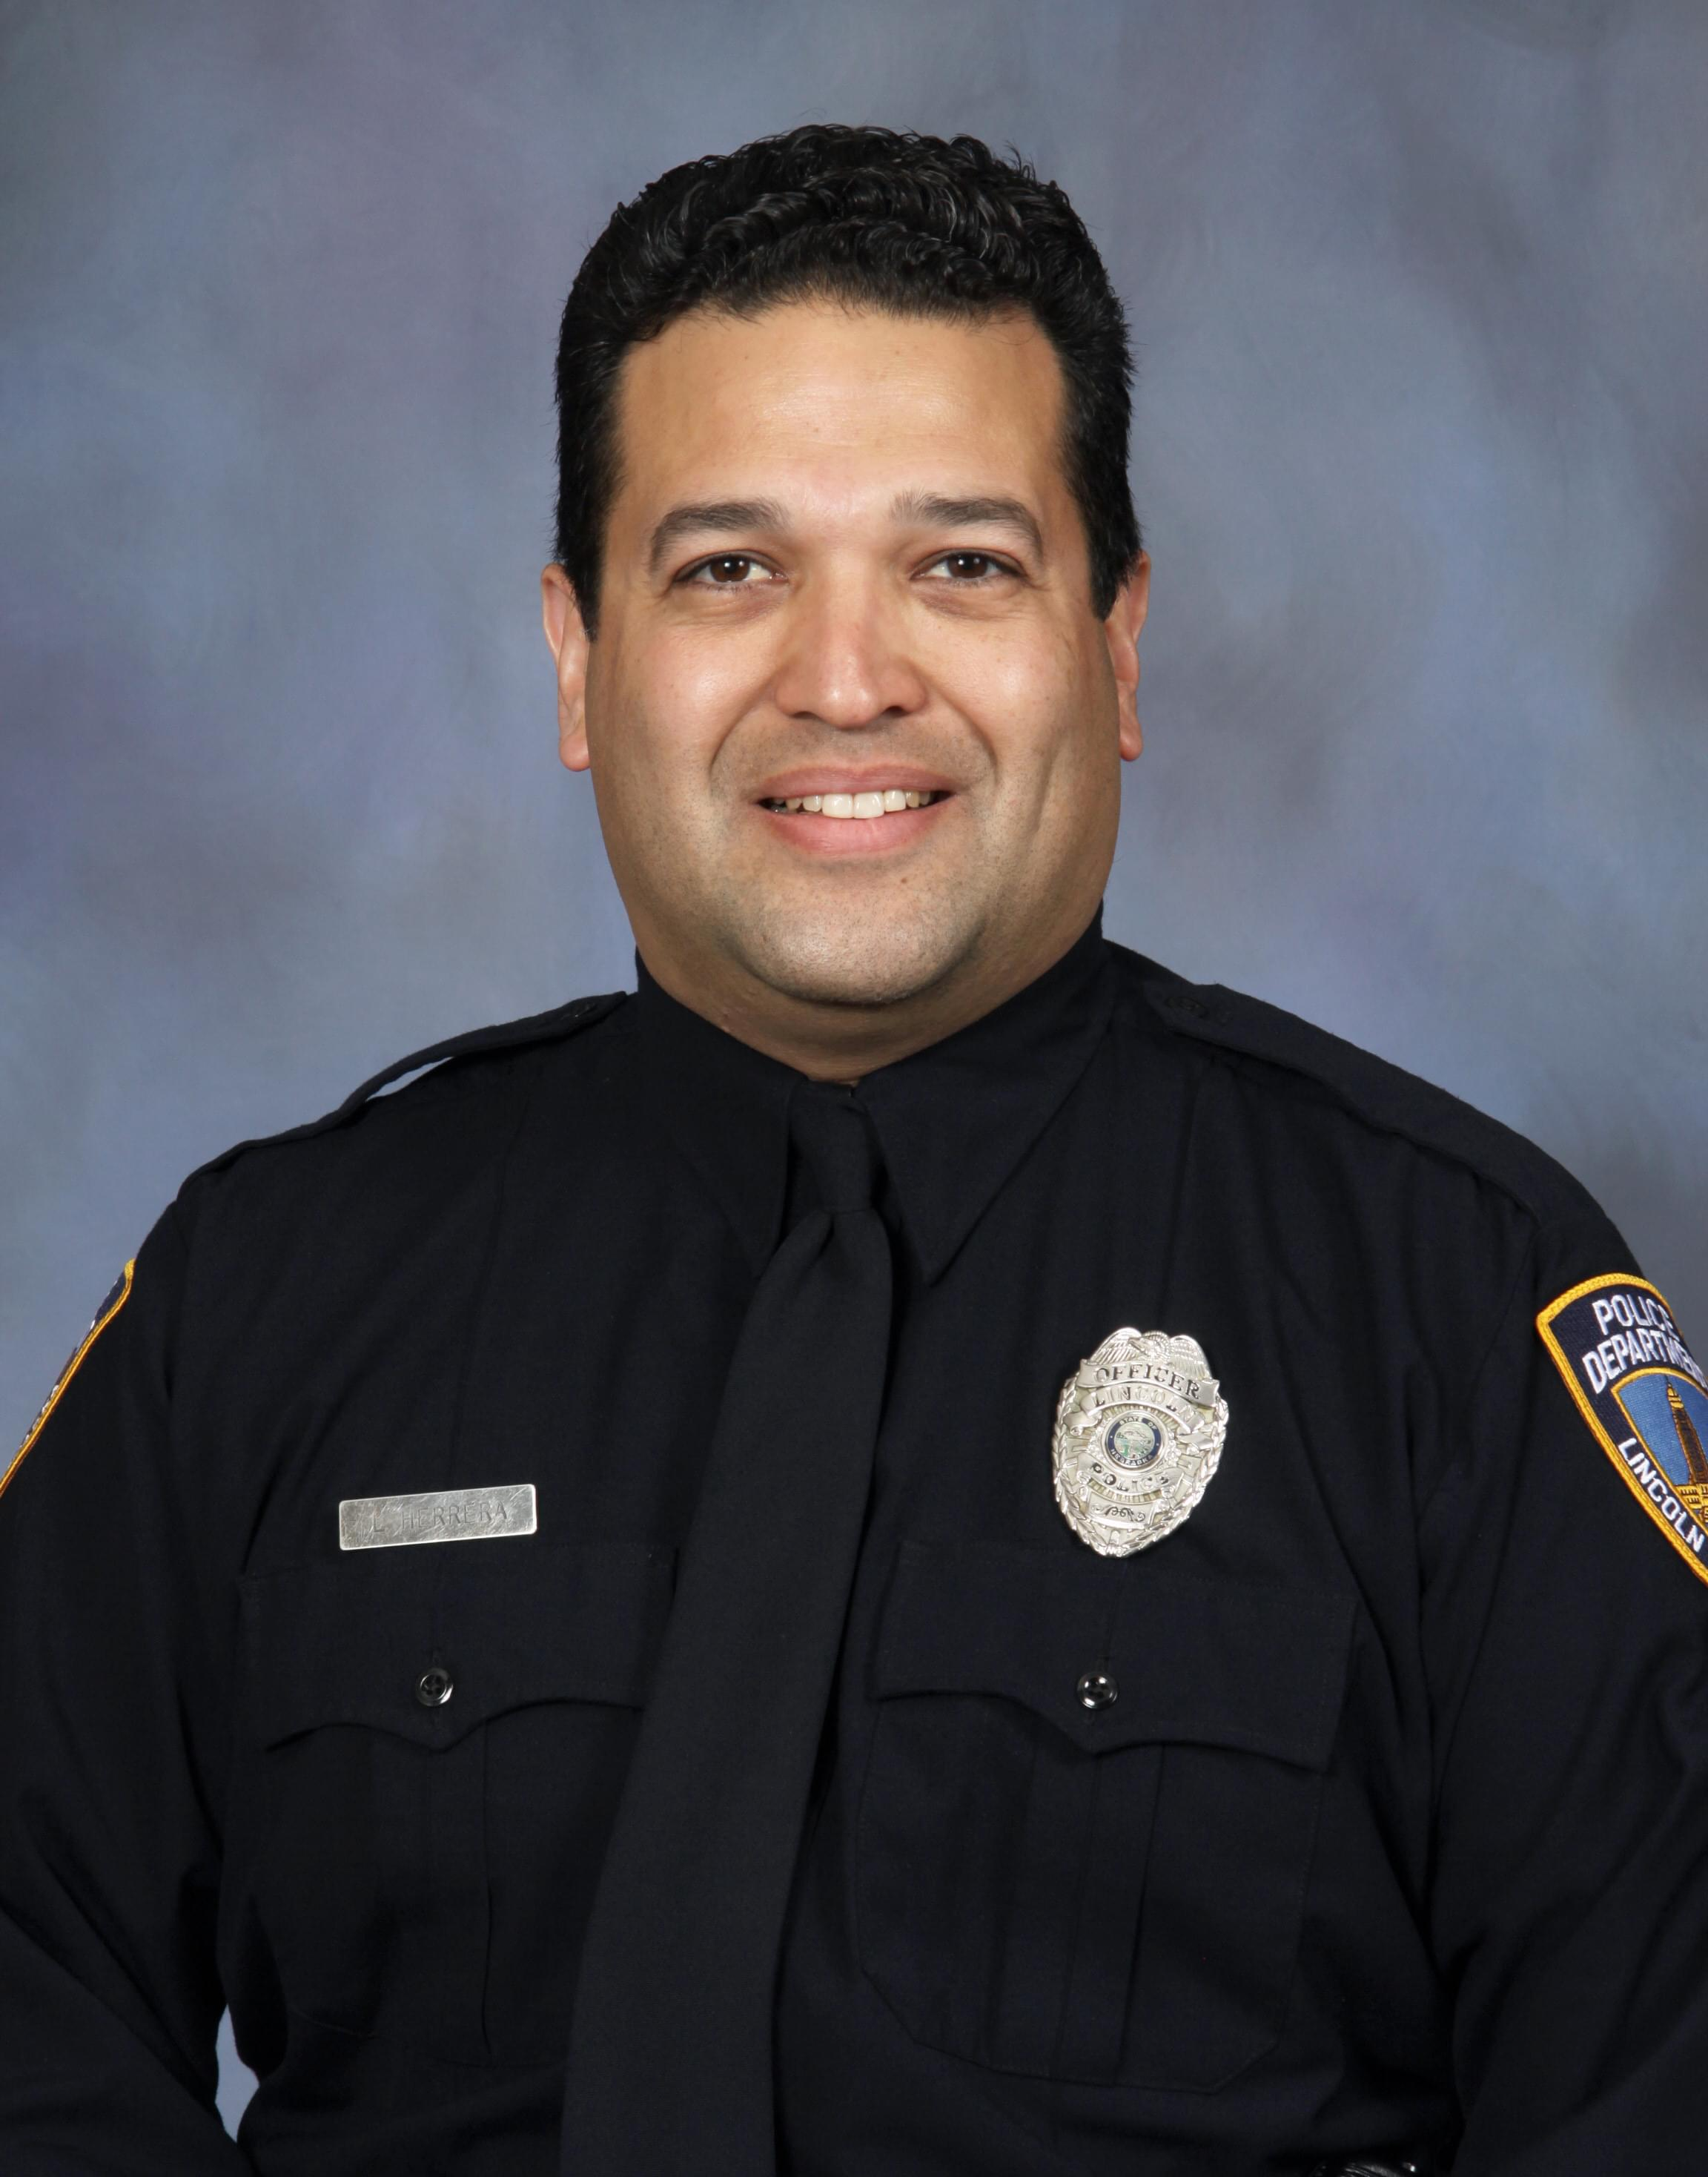 Funeral for slain Lincoln police officer open to public